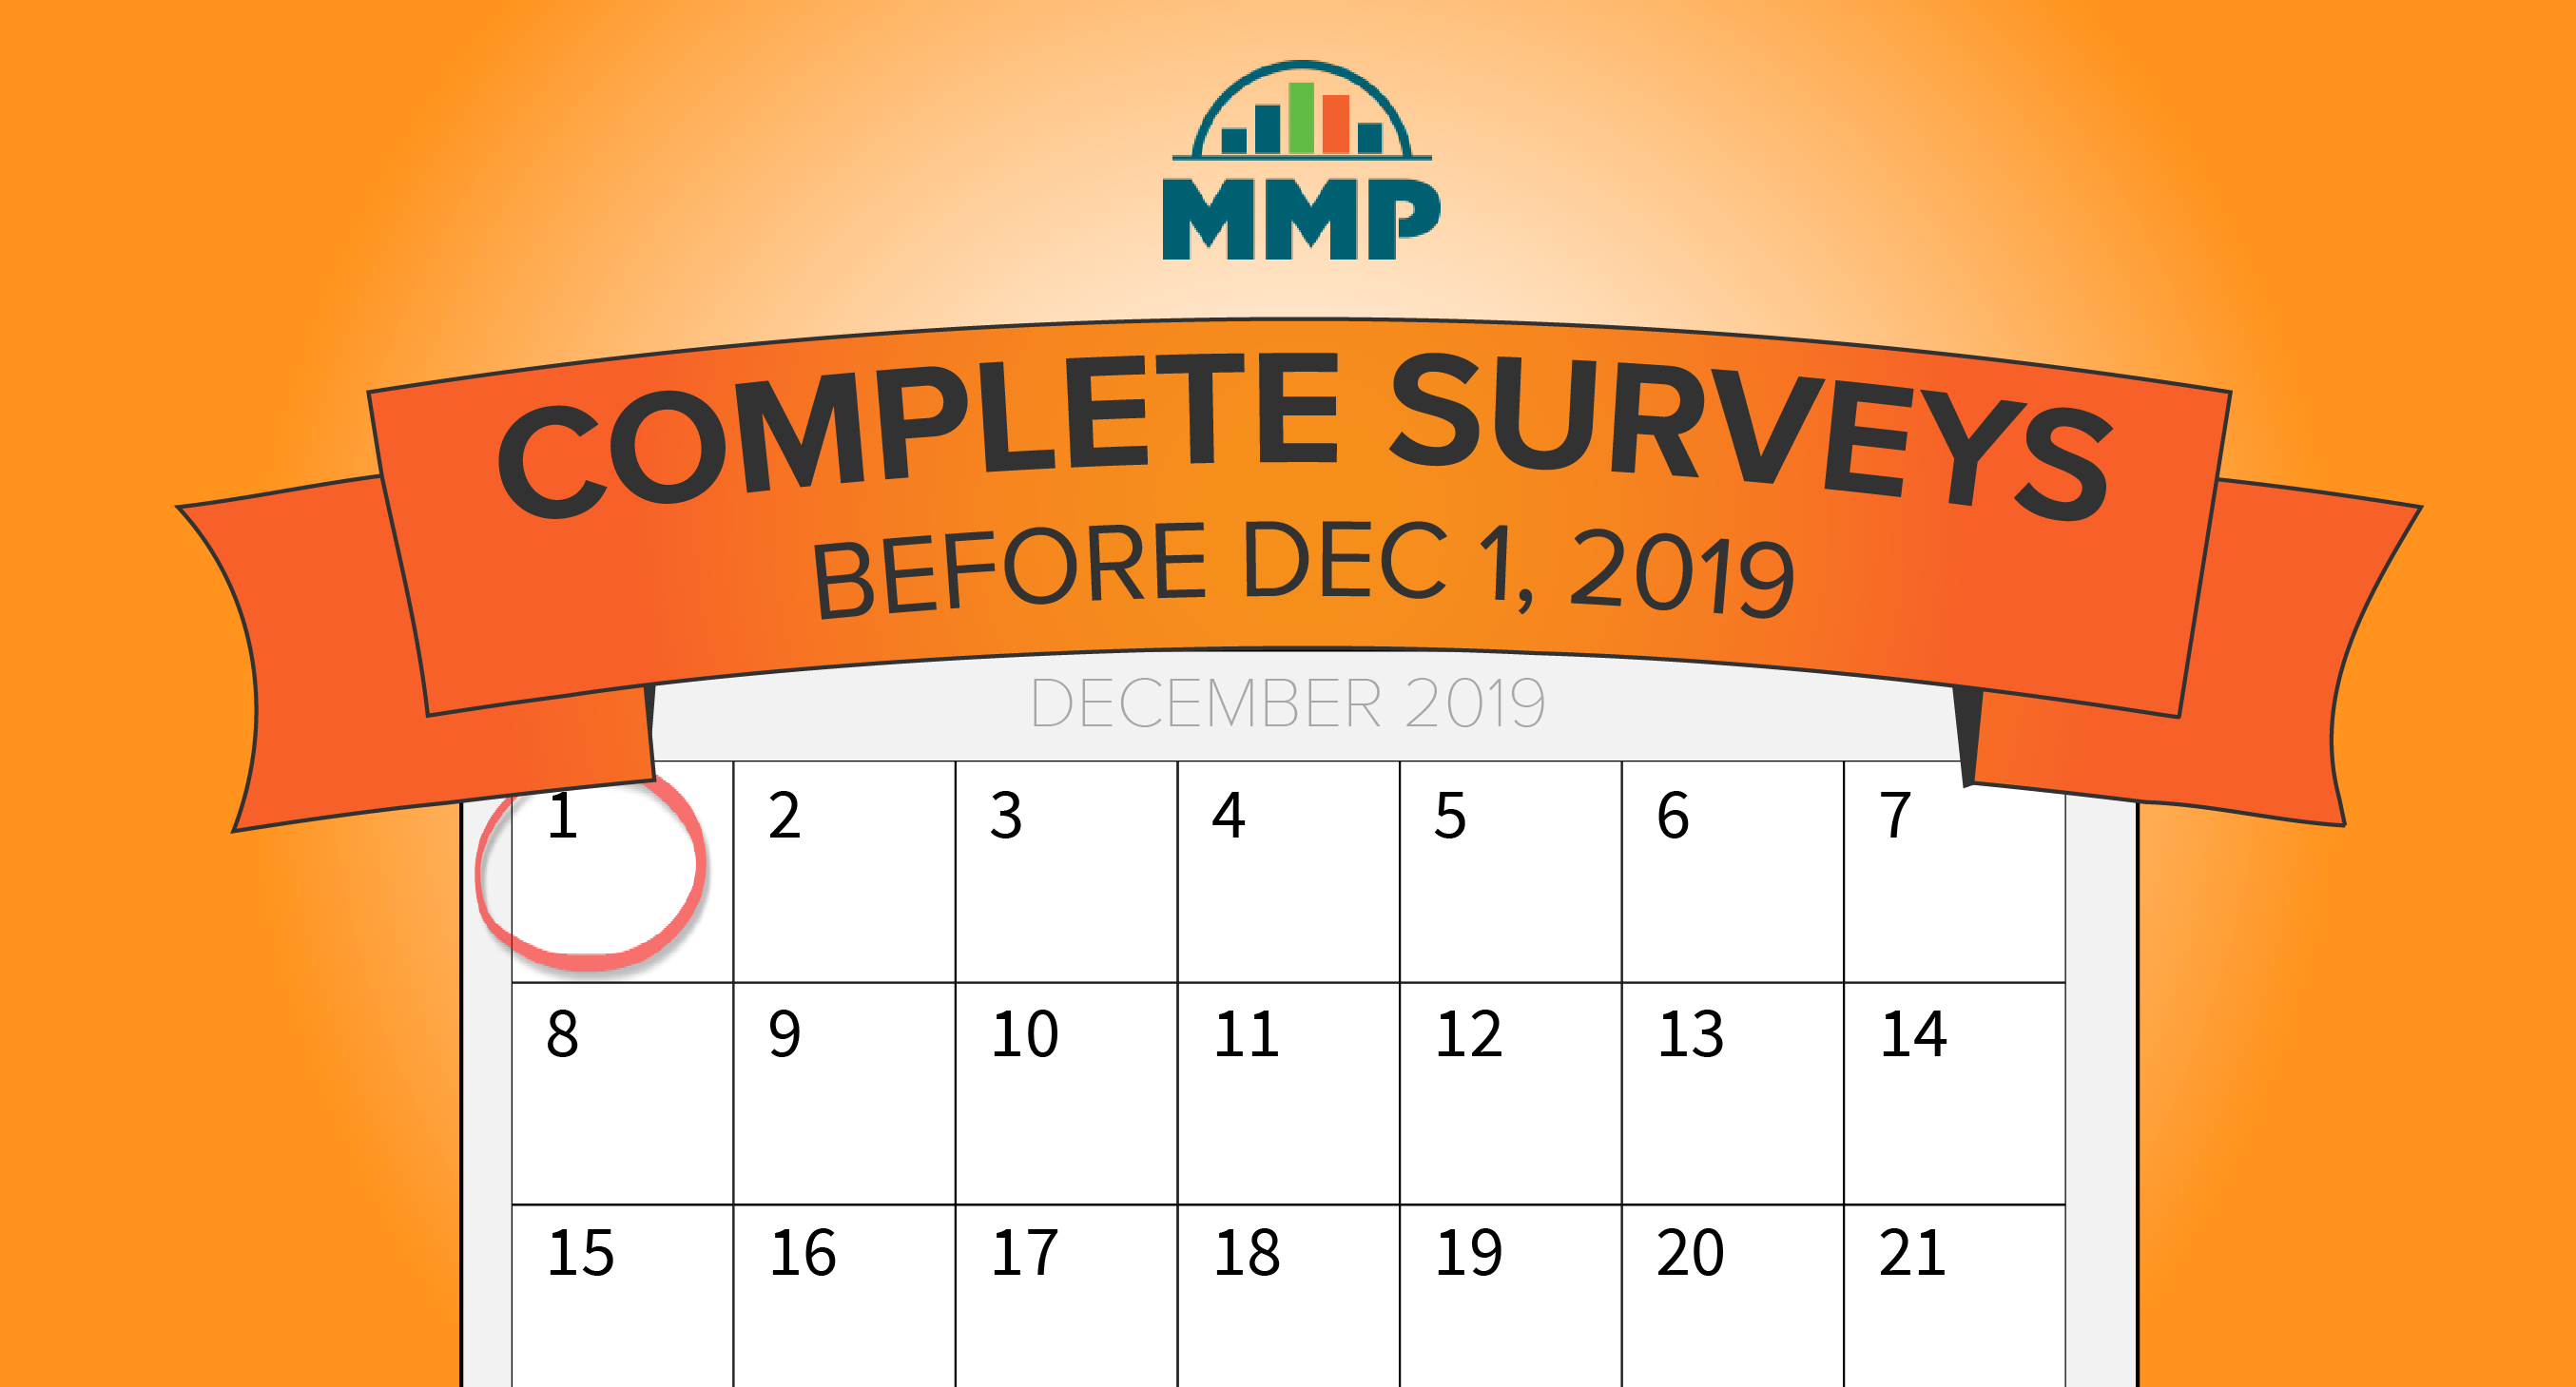 MMP reporting deadline is December 1, 2019